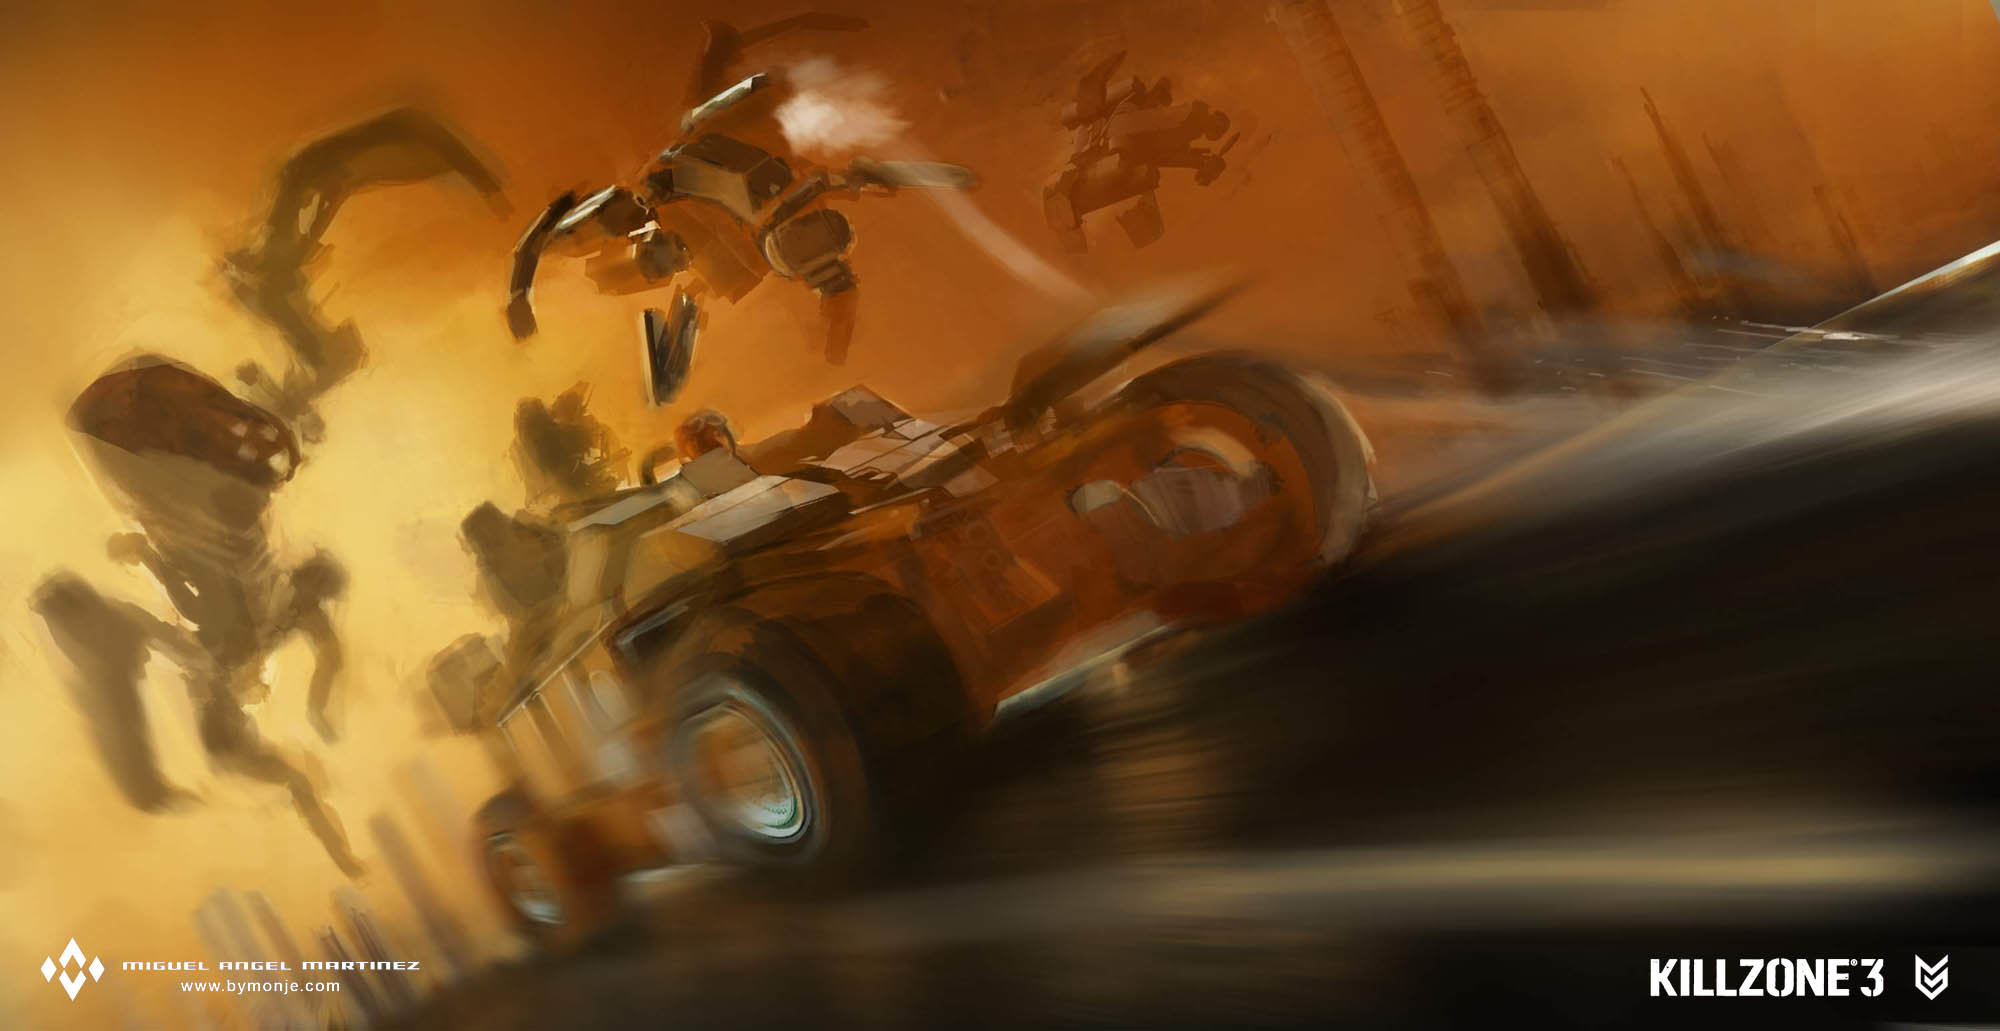 killzone 2 car chase sketch concept art miguel bymonje